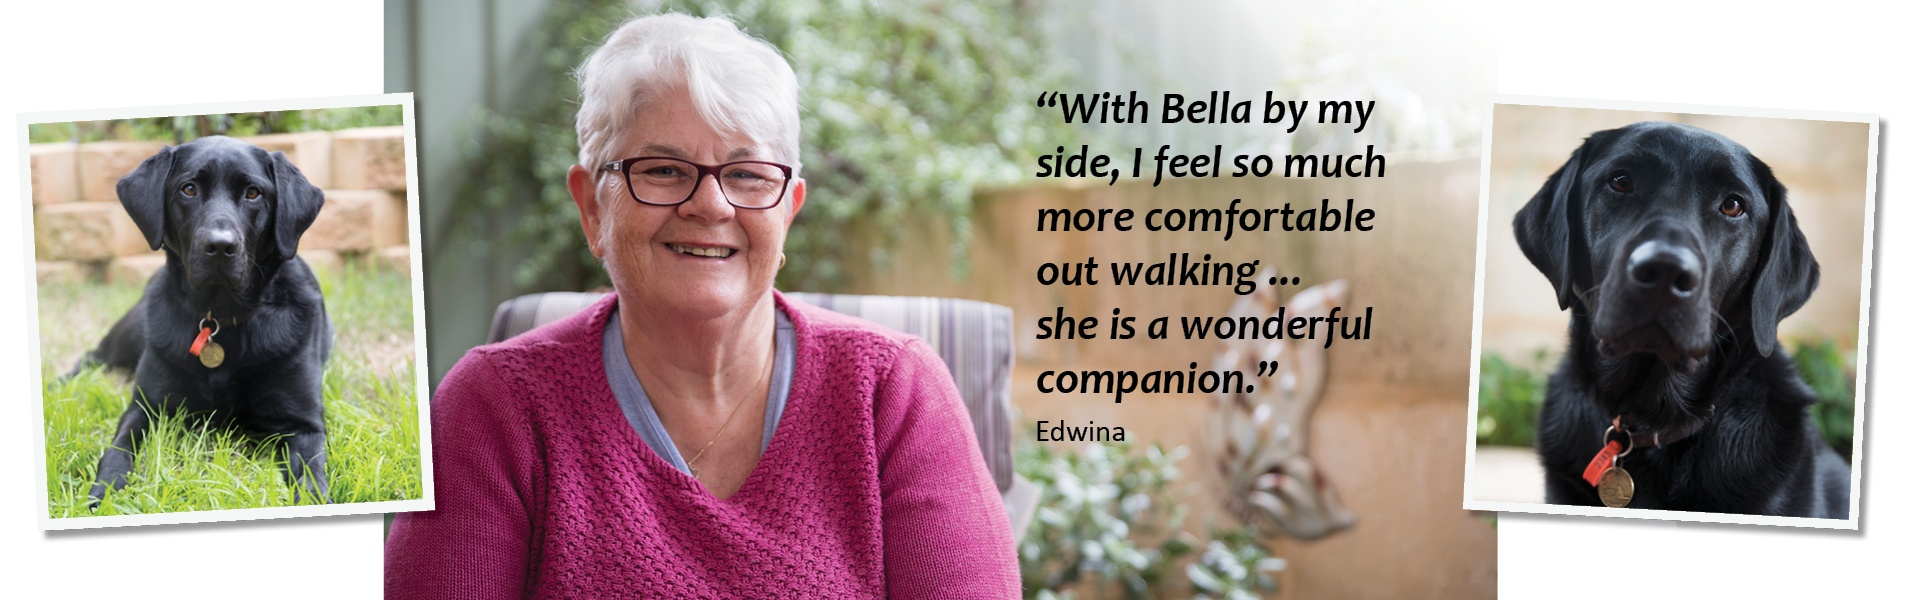 "Two photos of Guide Dog Bella, and one photo of her Handler Edwina, with quote ""With Bella by my side, I feel so much more comfortable out walking ... she is a wonderful companion."""